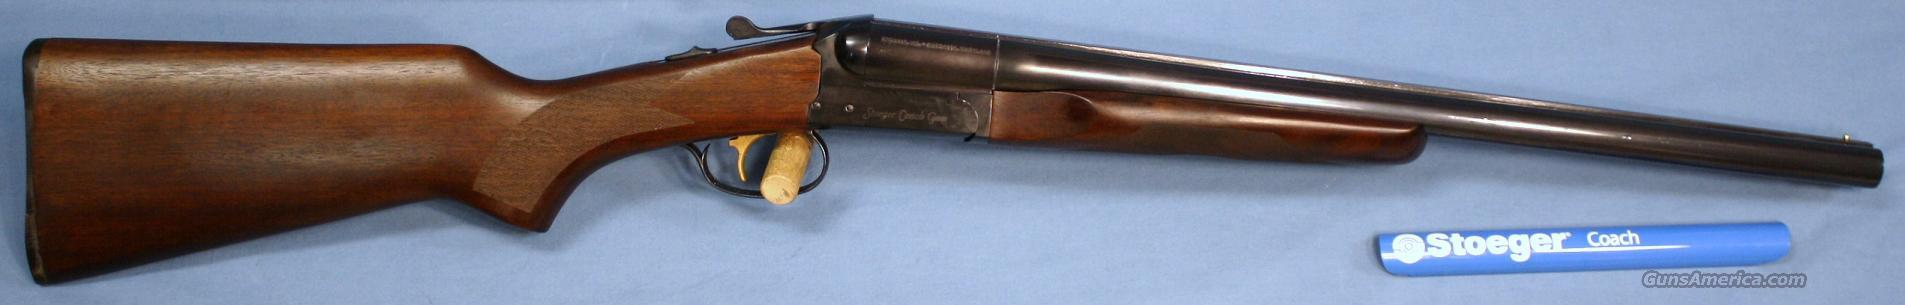 Stoeger Coach Gun ST 12 Gauge Side By Side Shotgun  Guns > Shotguns > Stoeger Shotguns